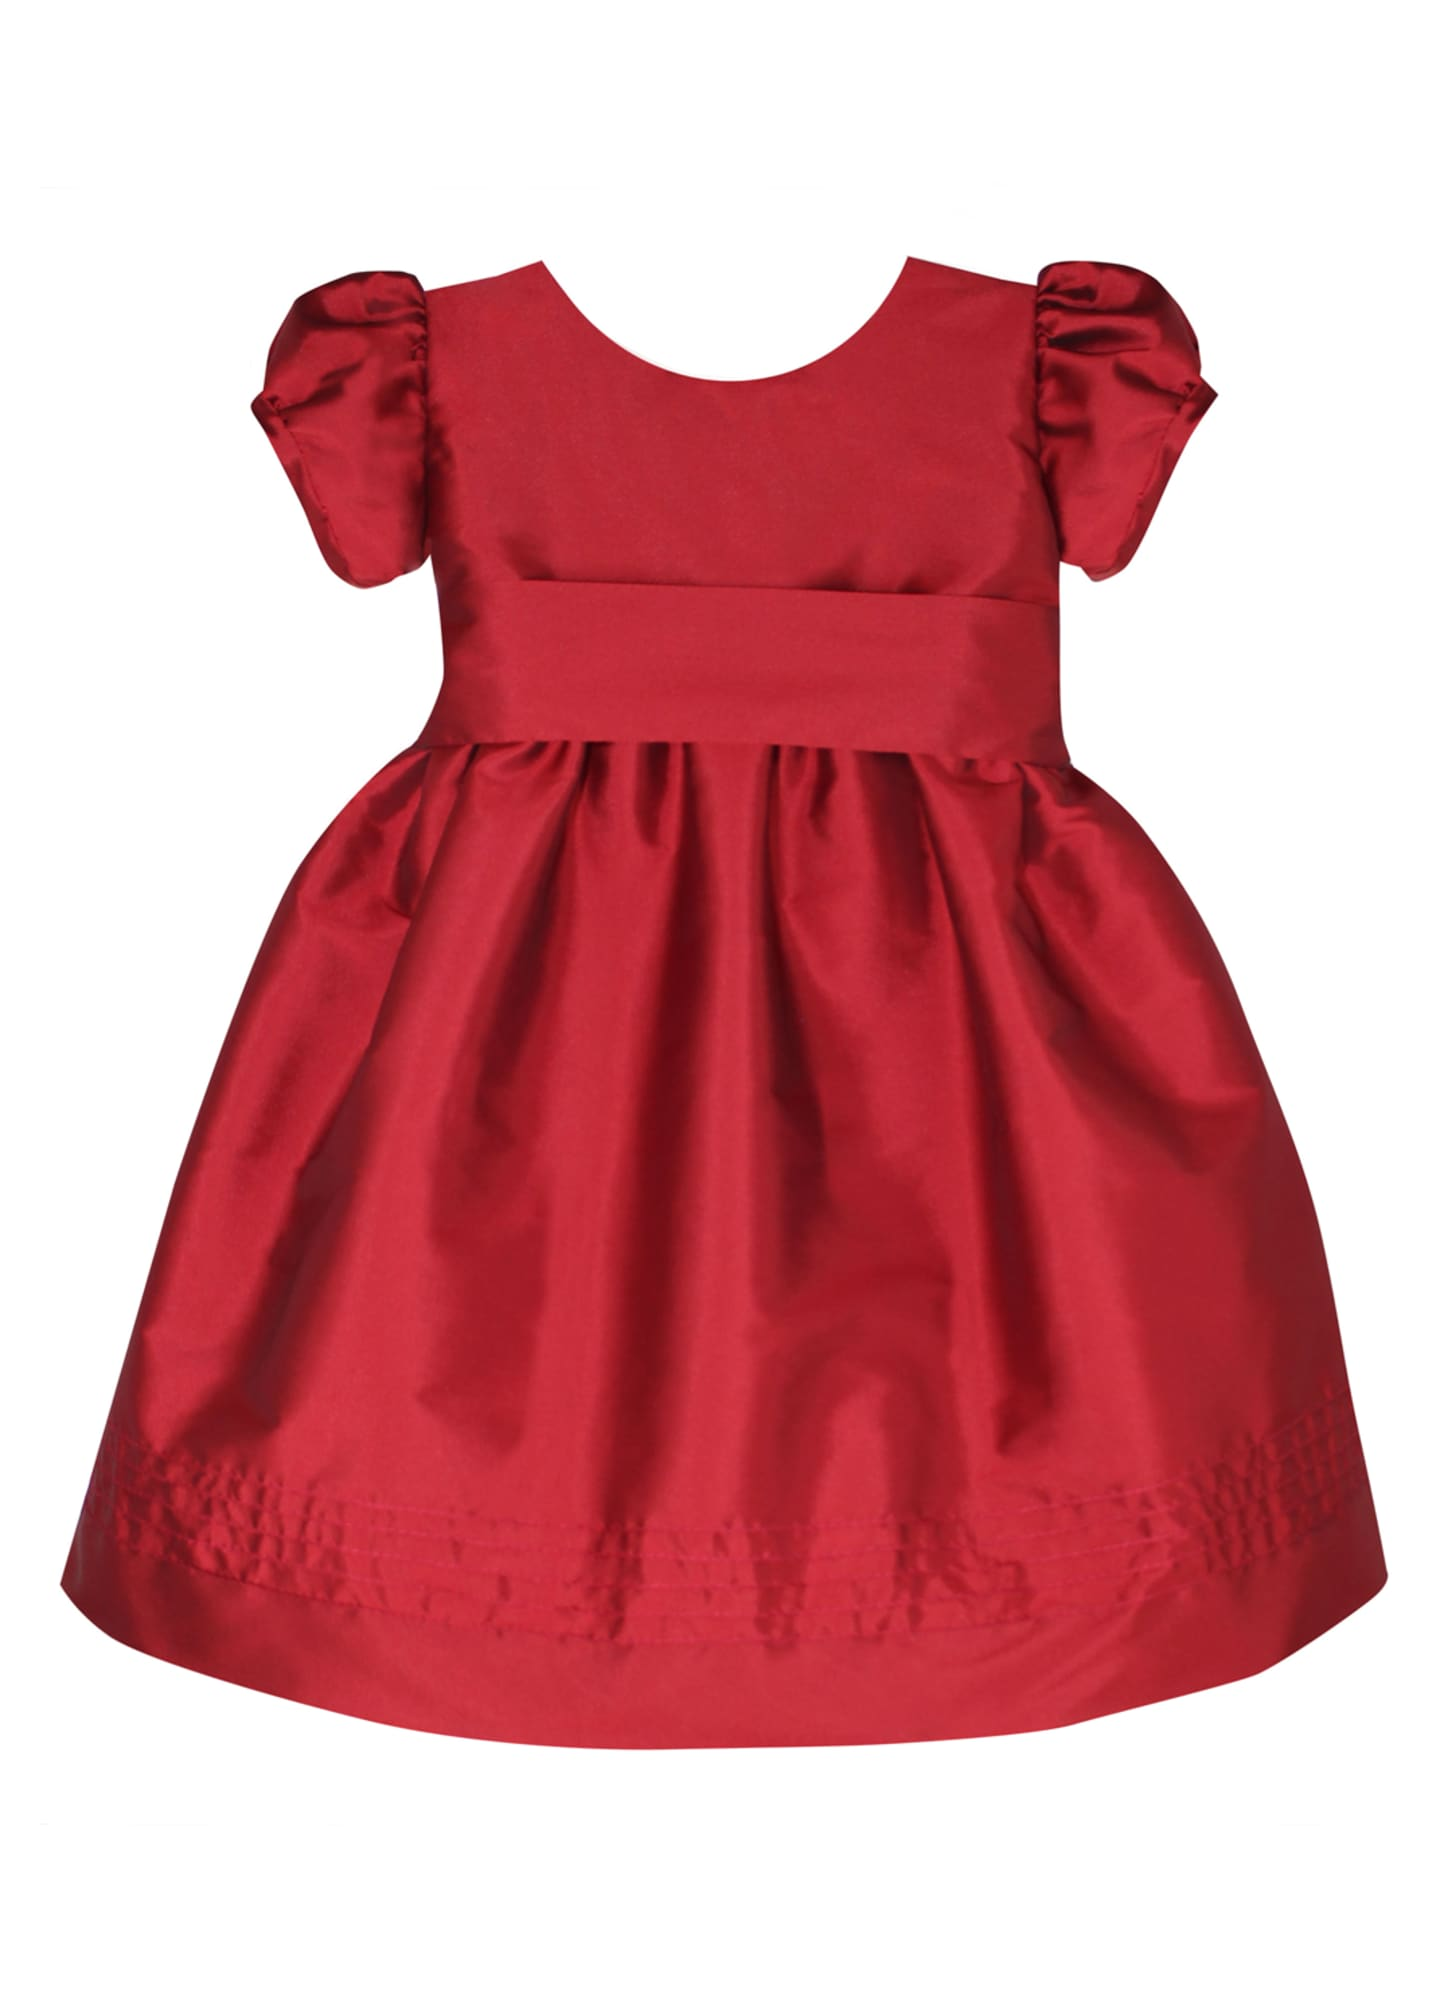 Isabel Garreton Timeless Taffeta Puffy-Sleeve Dress, Size 2-4T